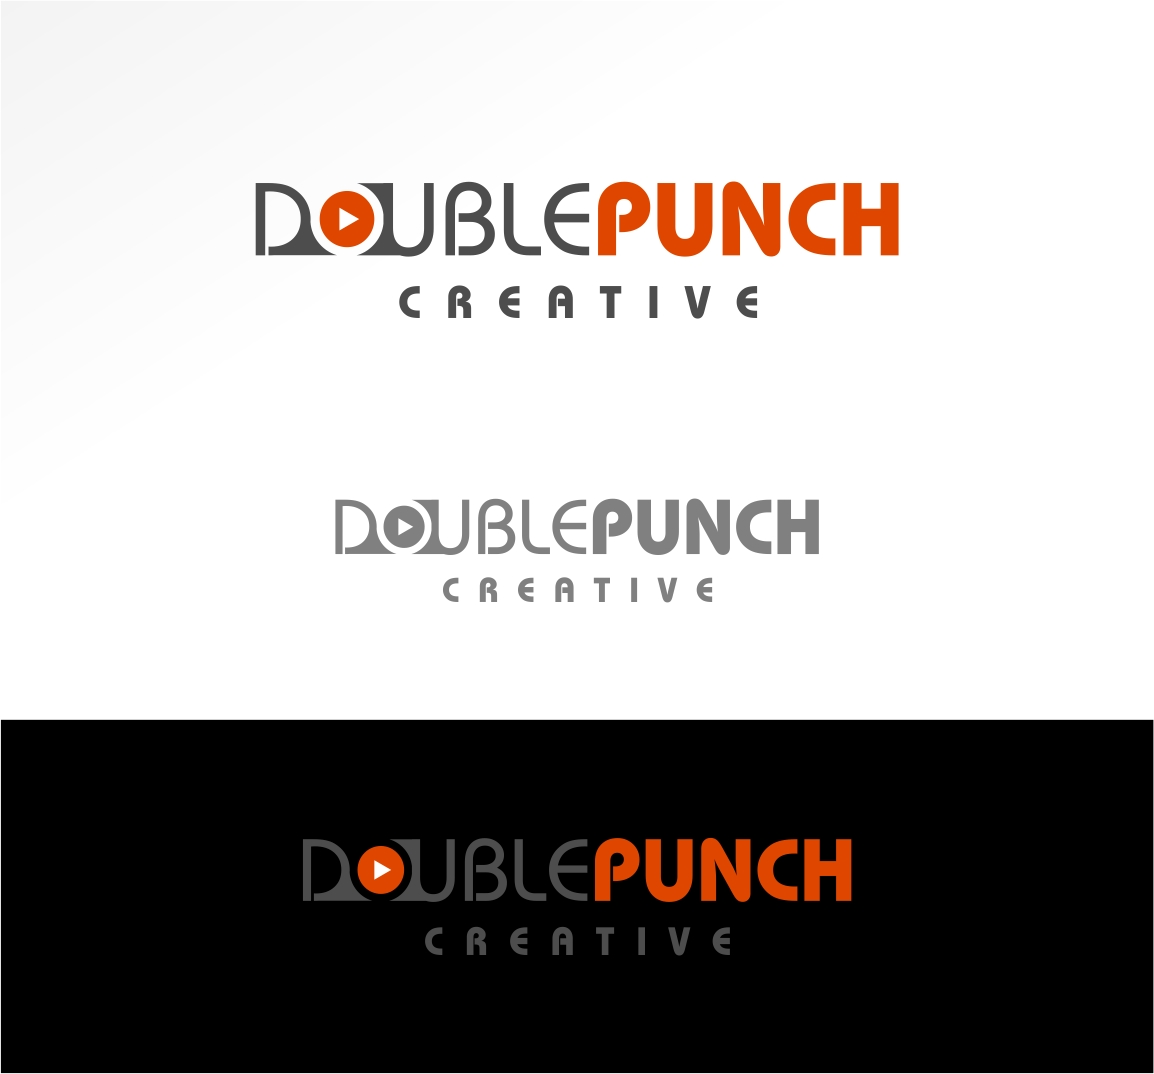 Logo Design by haidu - Entry No. 164 in the Logo Design Contest Unique Logo Design Wanted for Double Punch Creative.